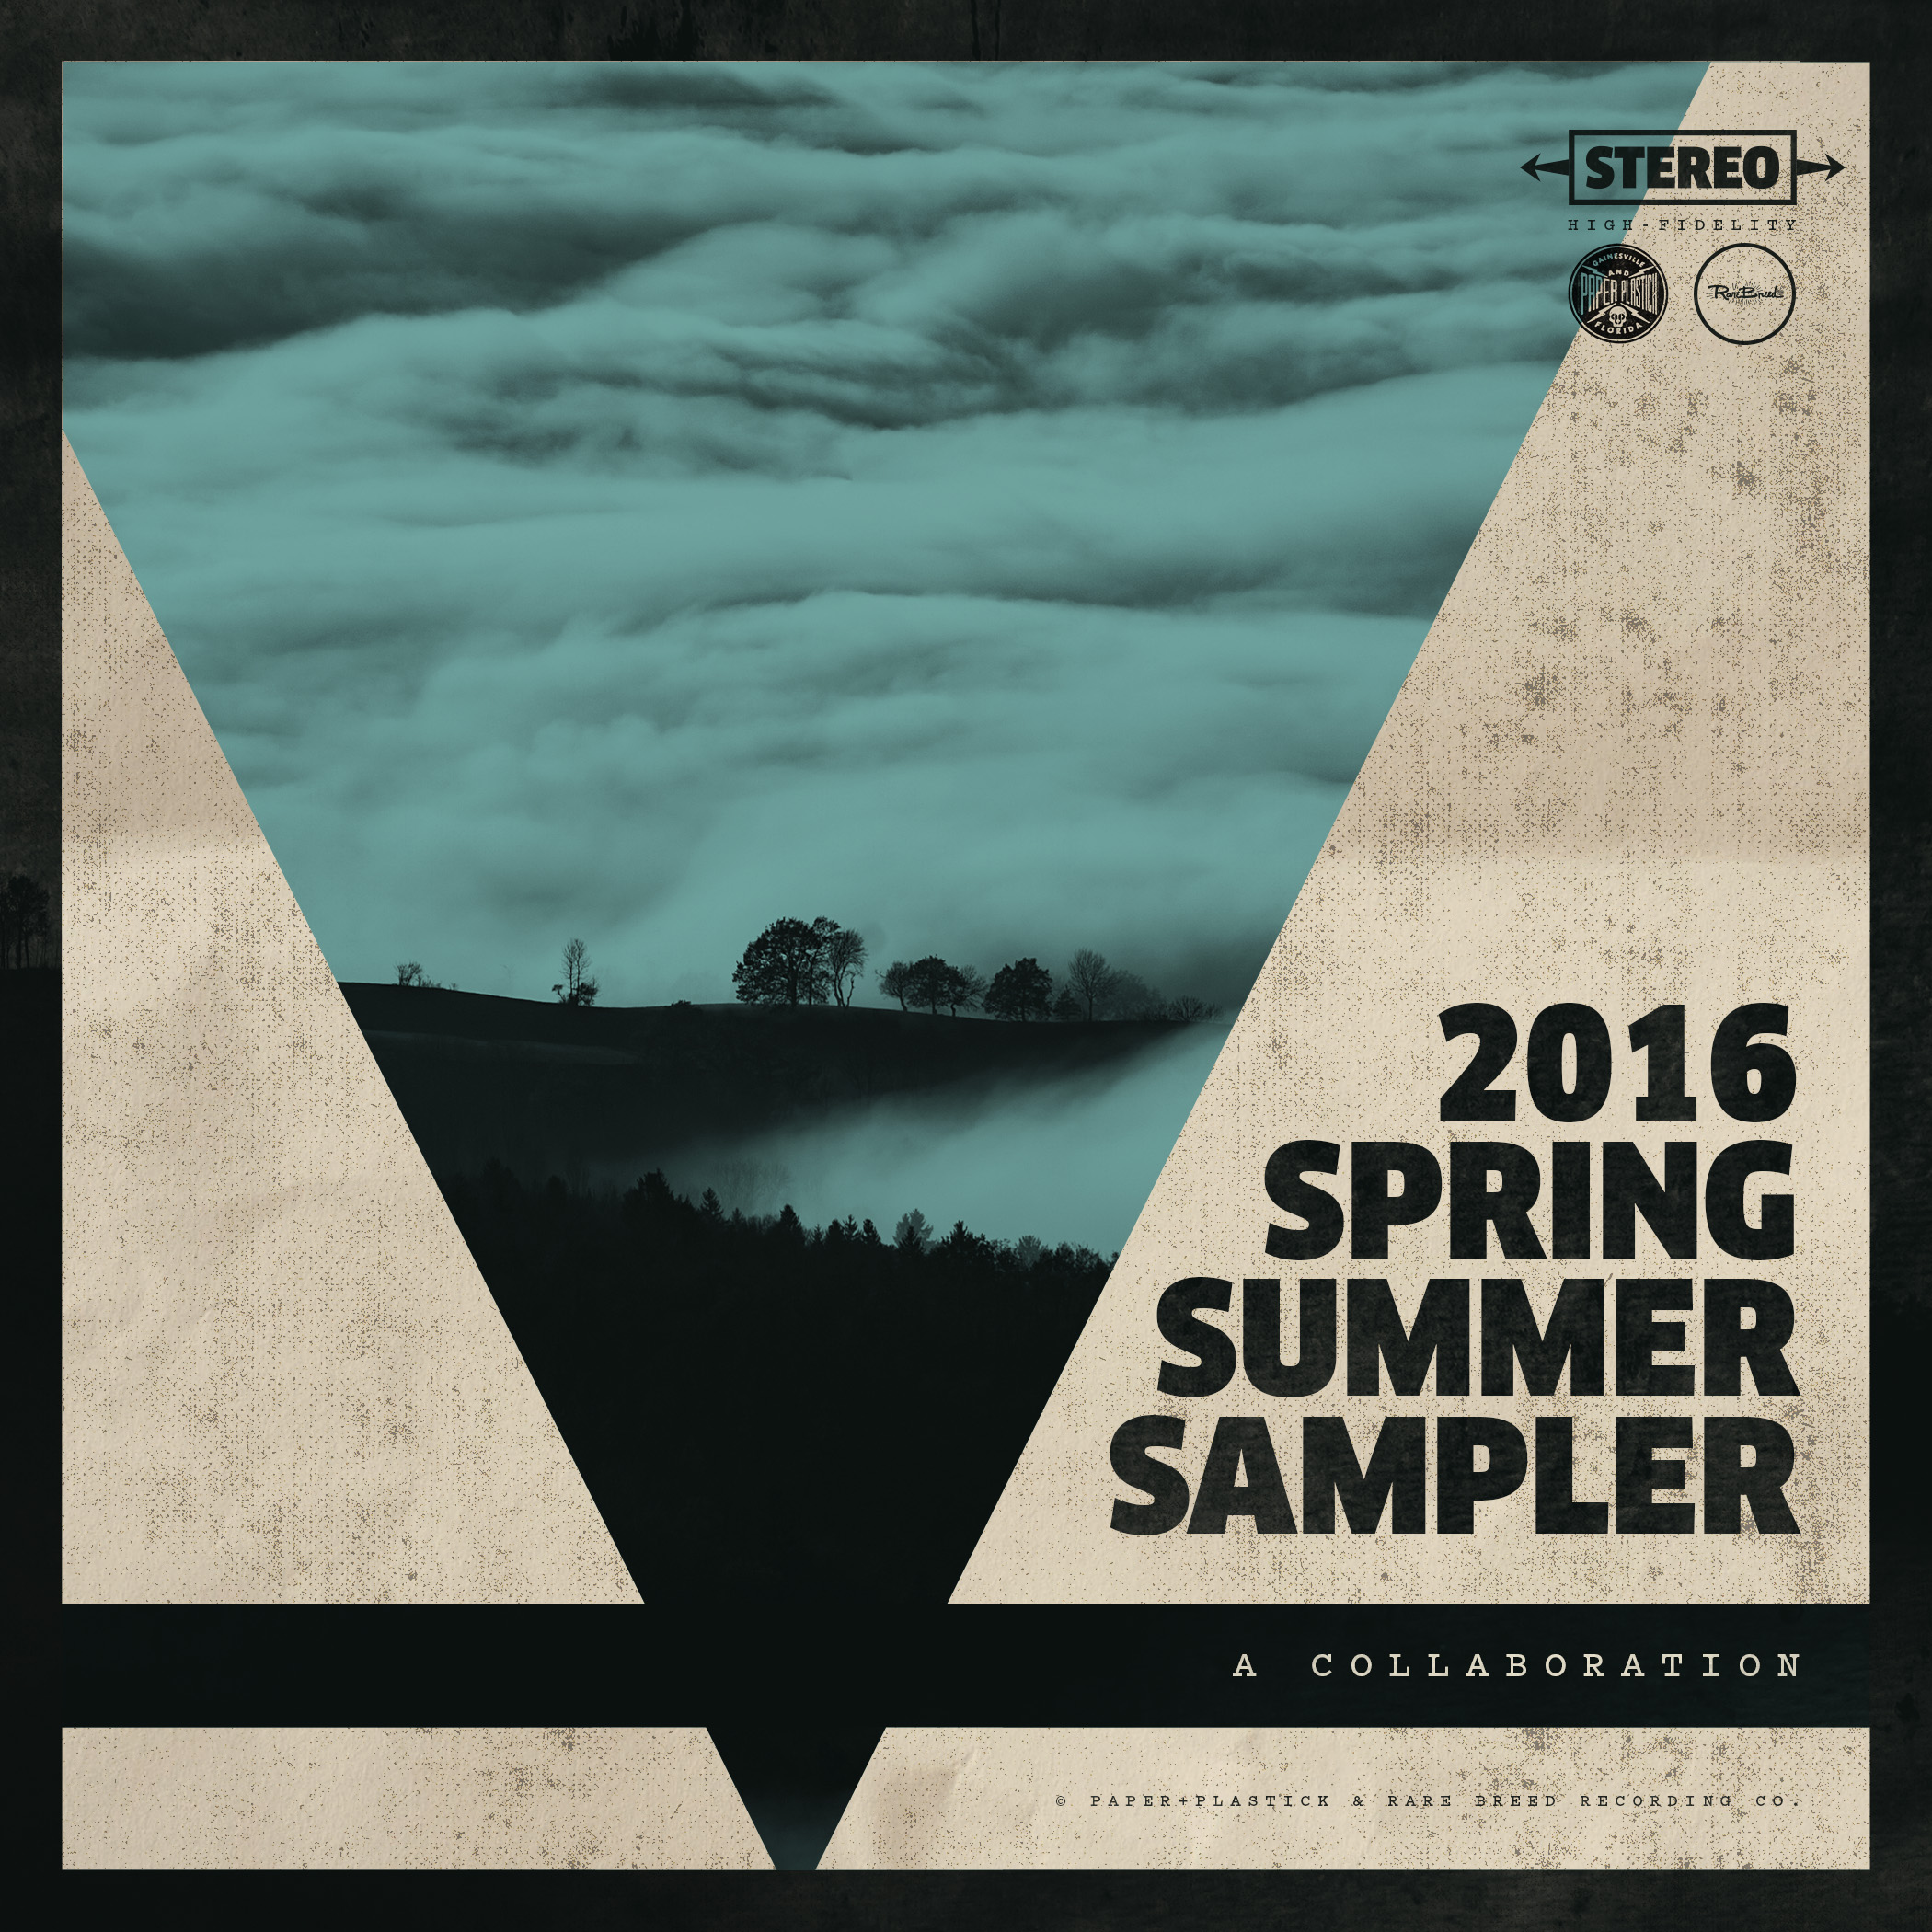 Paper + Plastick / Rare Breed Recording Co. Spring/Summer 2016 Sampler